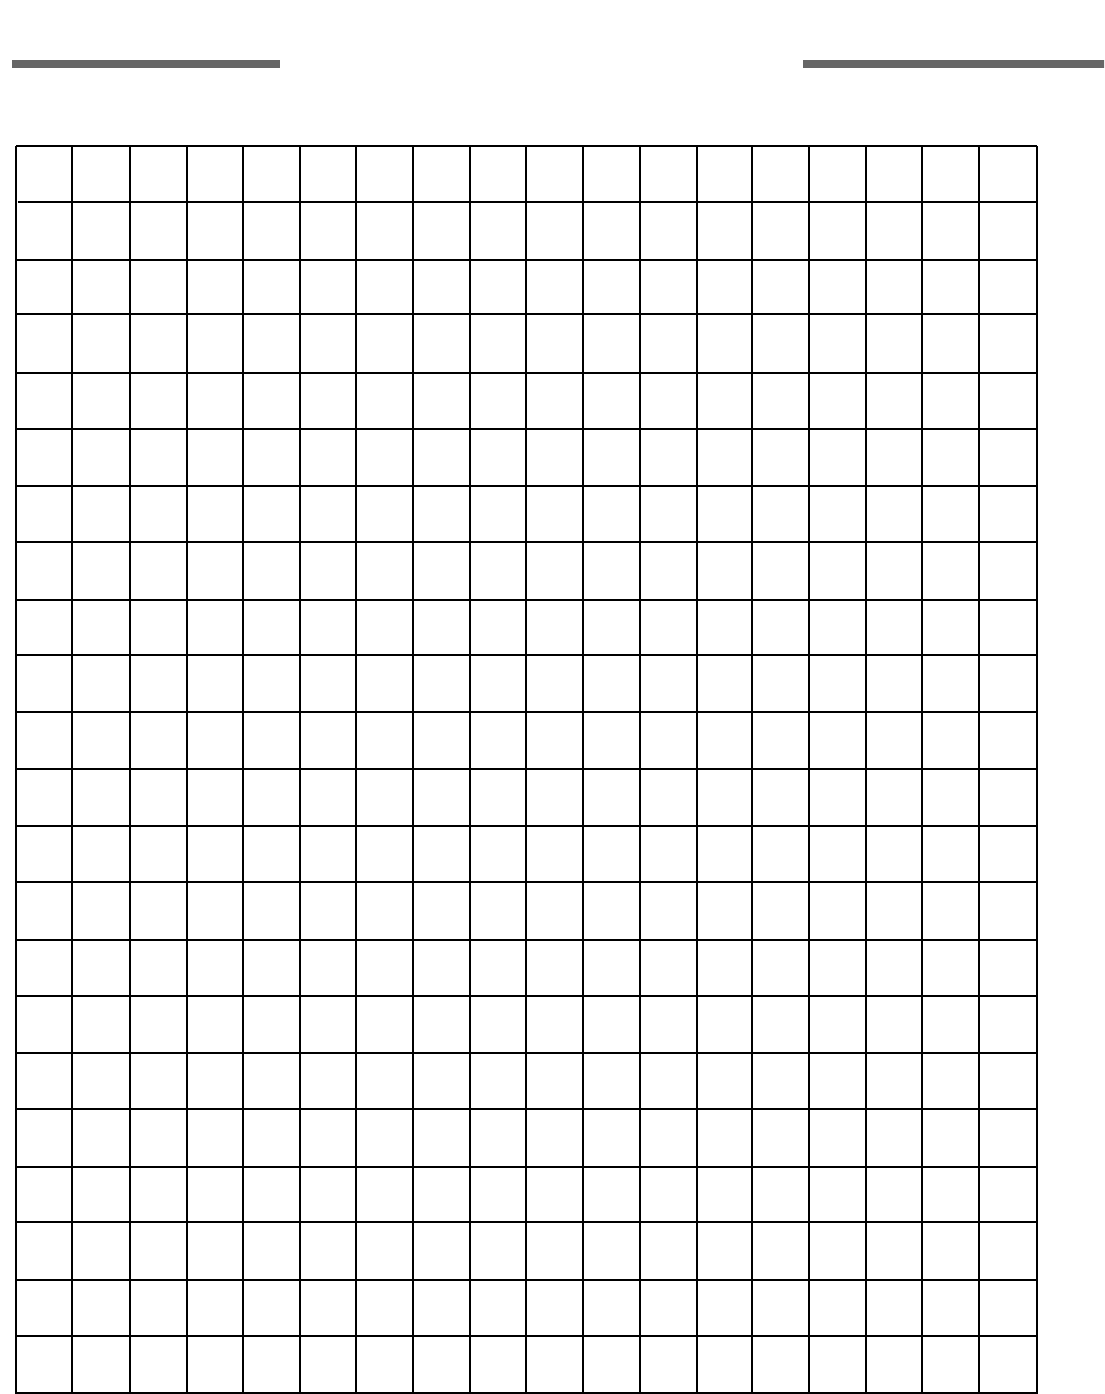 photograph relating to Printable Centimeter Grid Paper referred to as Down load 1-Centimeter Grid Paper for Totally free - TidyTemplates